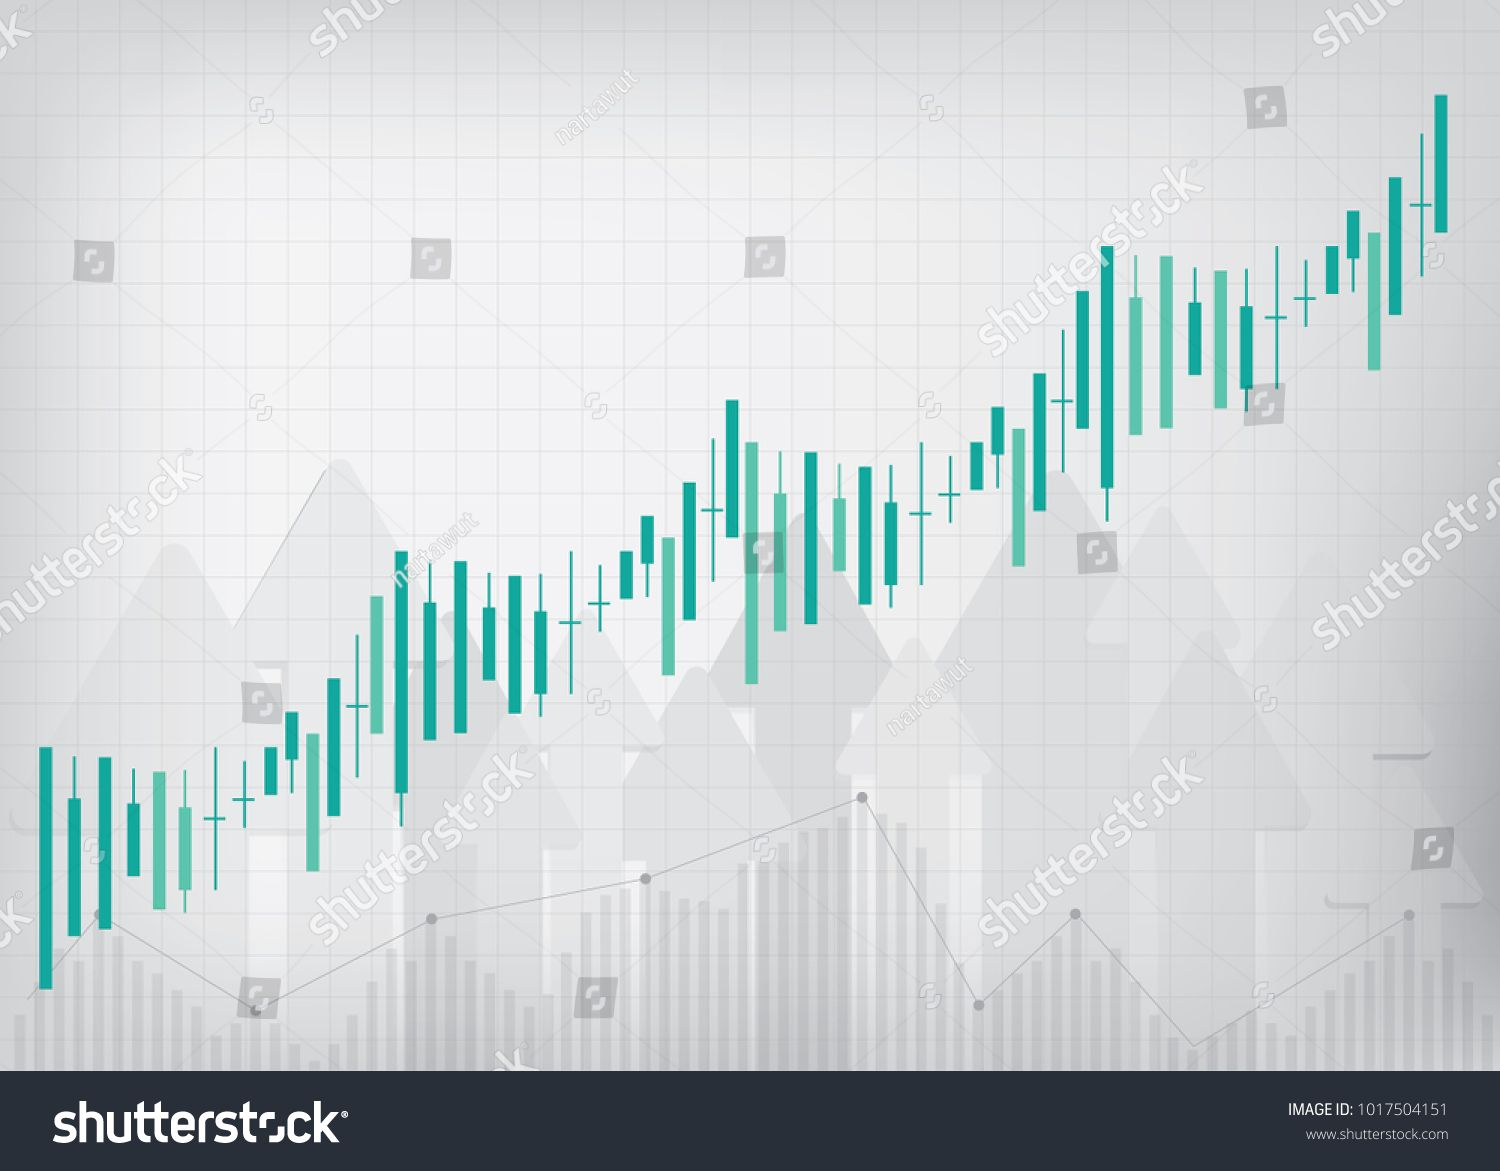 Uptrend line graph stock market  Candlestick chart strength, Arrow